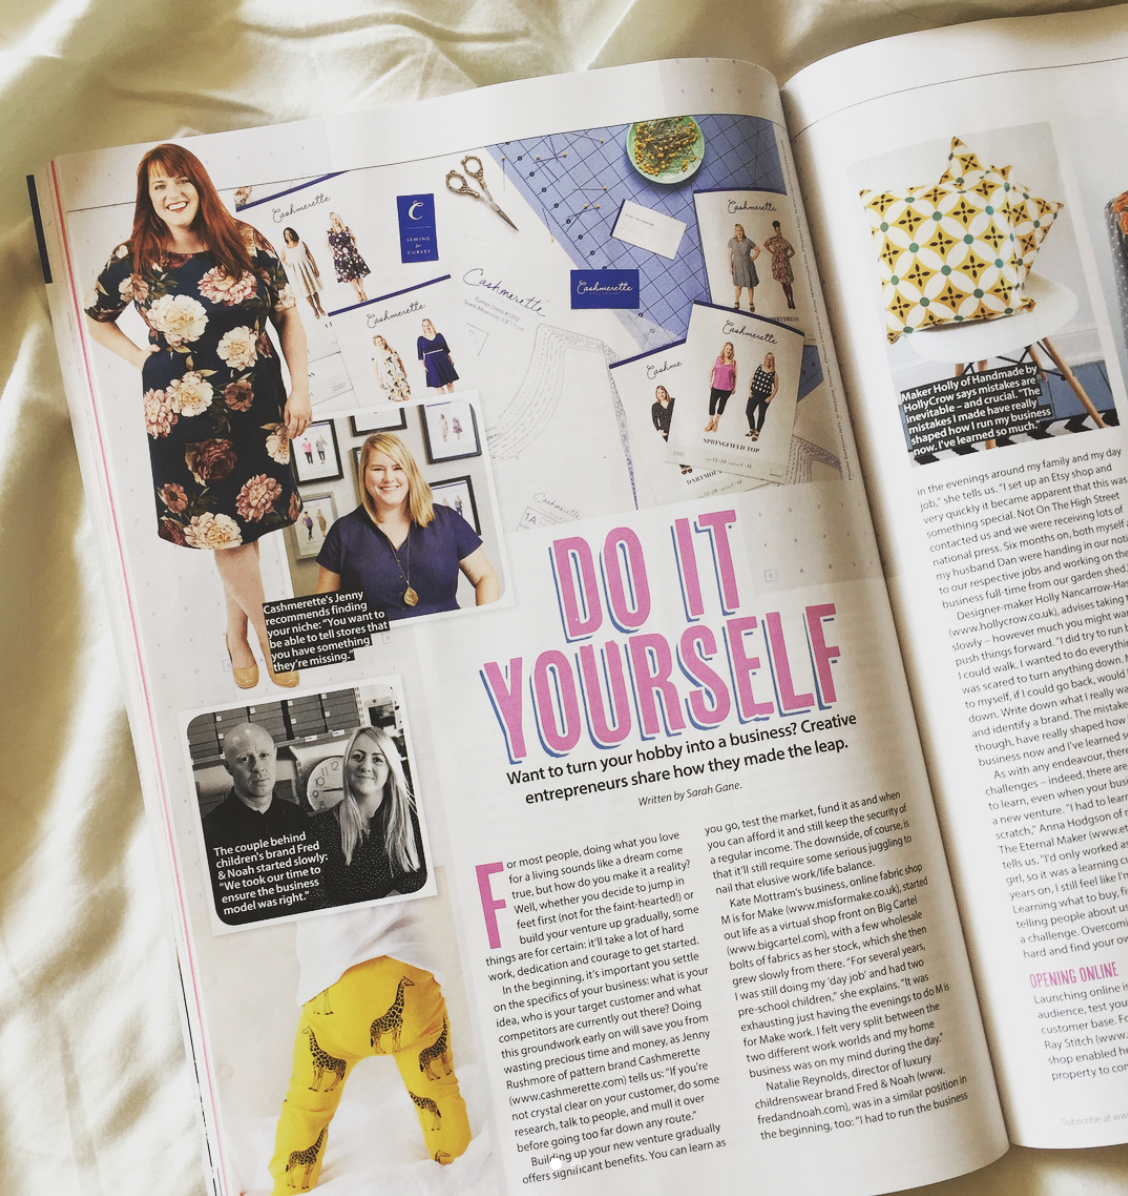 Creative business feature for Simply Sewing magazine. Featuring interviews with the founder of Cashmerette patterns, director of independent kids' clothing brand Fred & Noah, M is for Make, founders of NYC's Purl Soho, Eternal Maker, show director of the Handmade Fair, founder of Crafty Fox Market, owner of Ray Stitch, and lots more